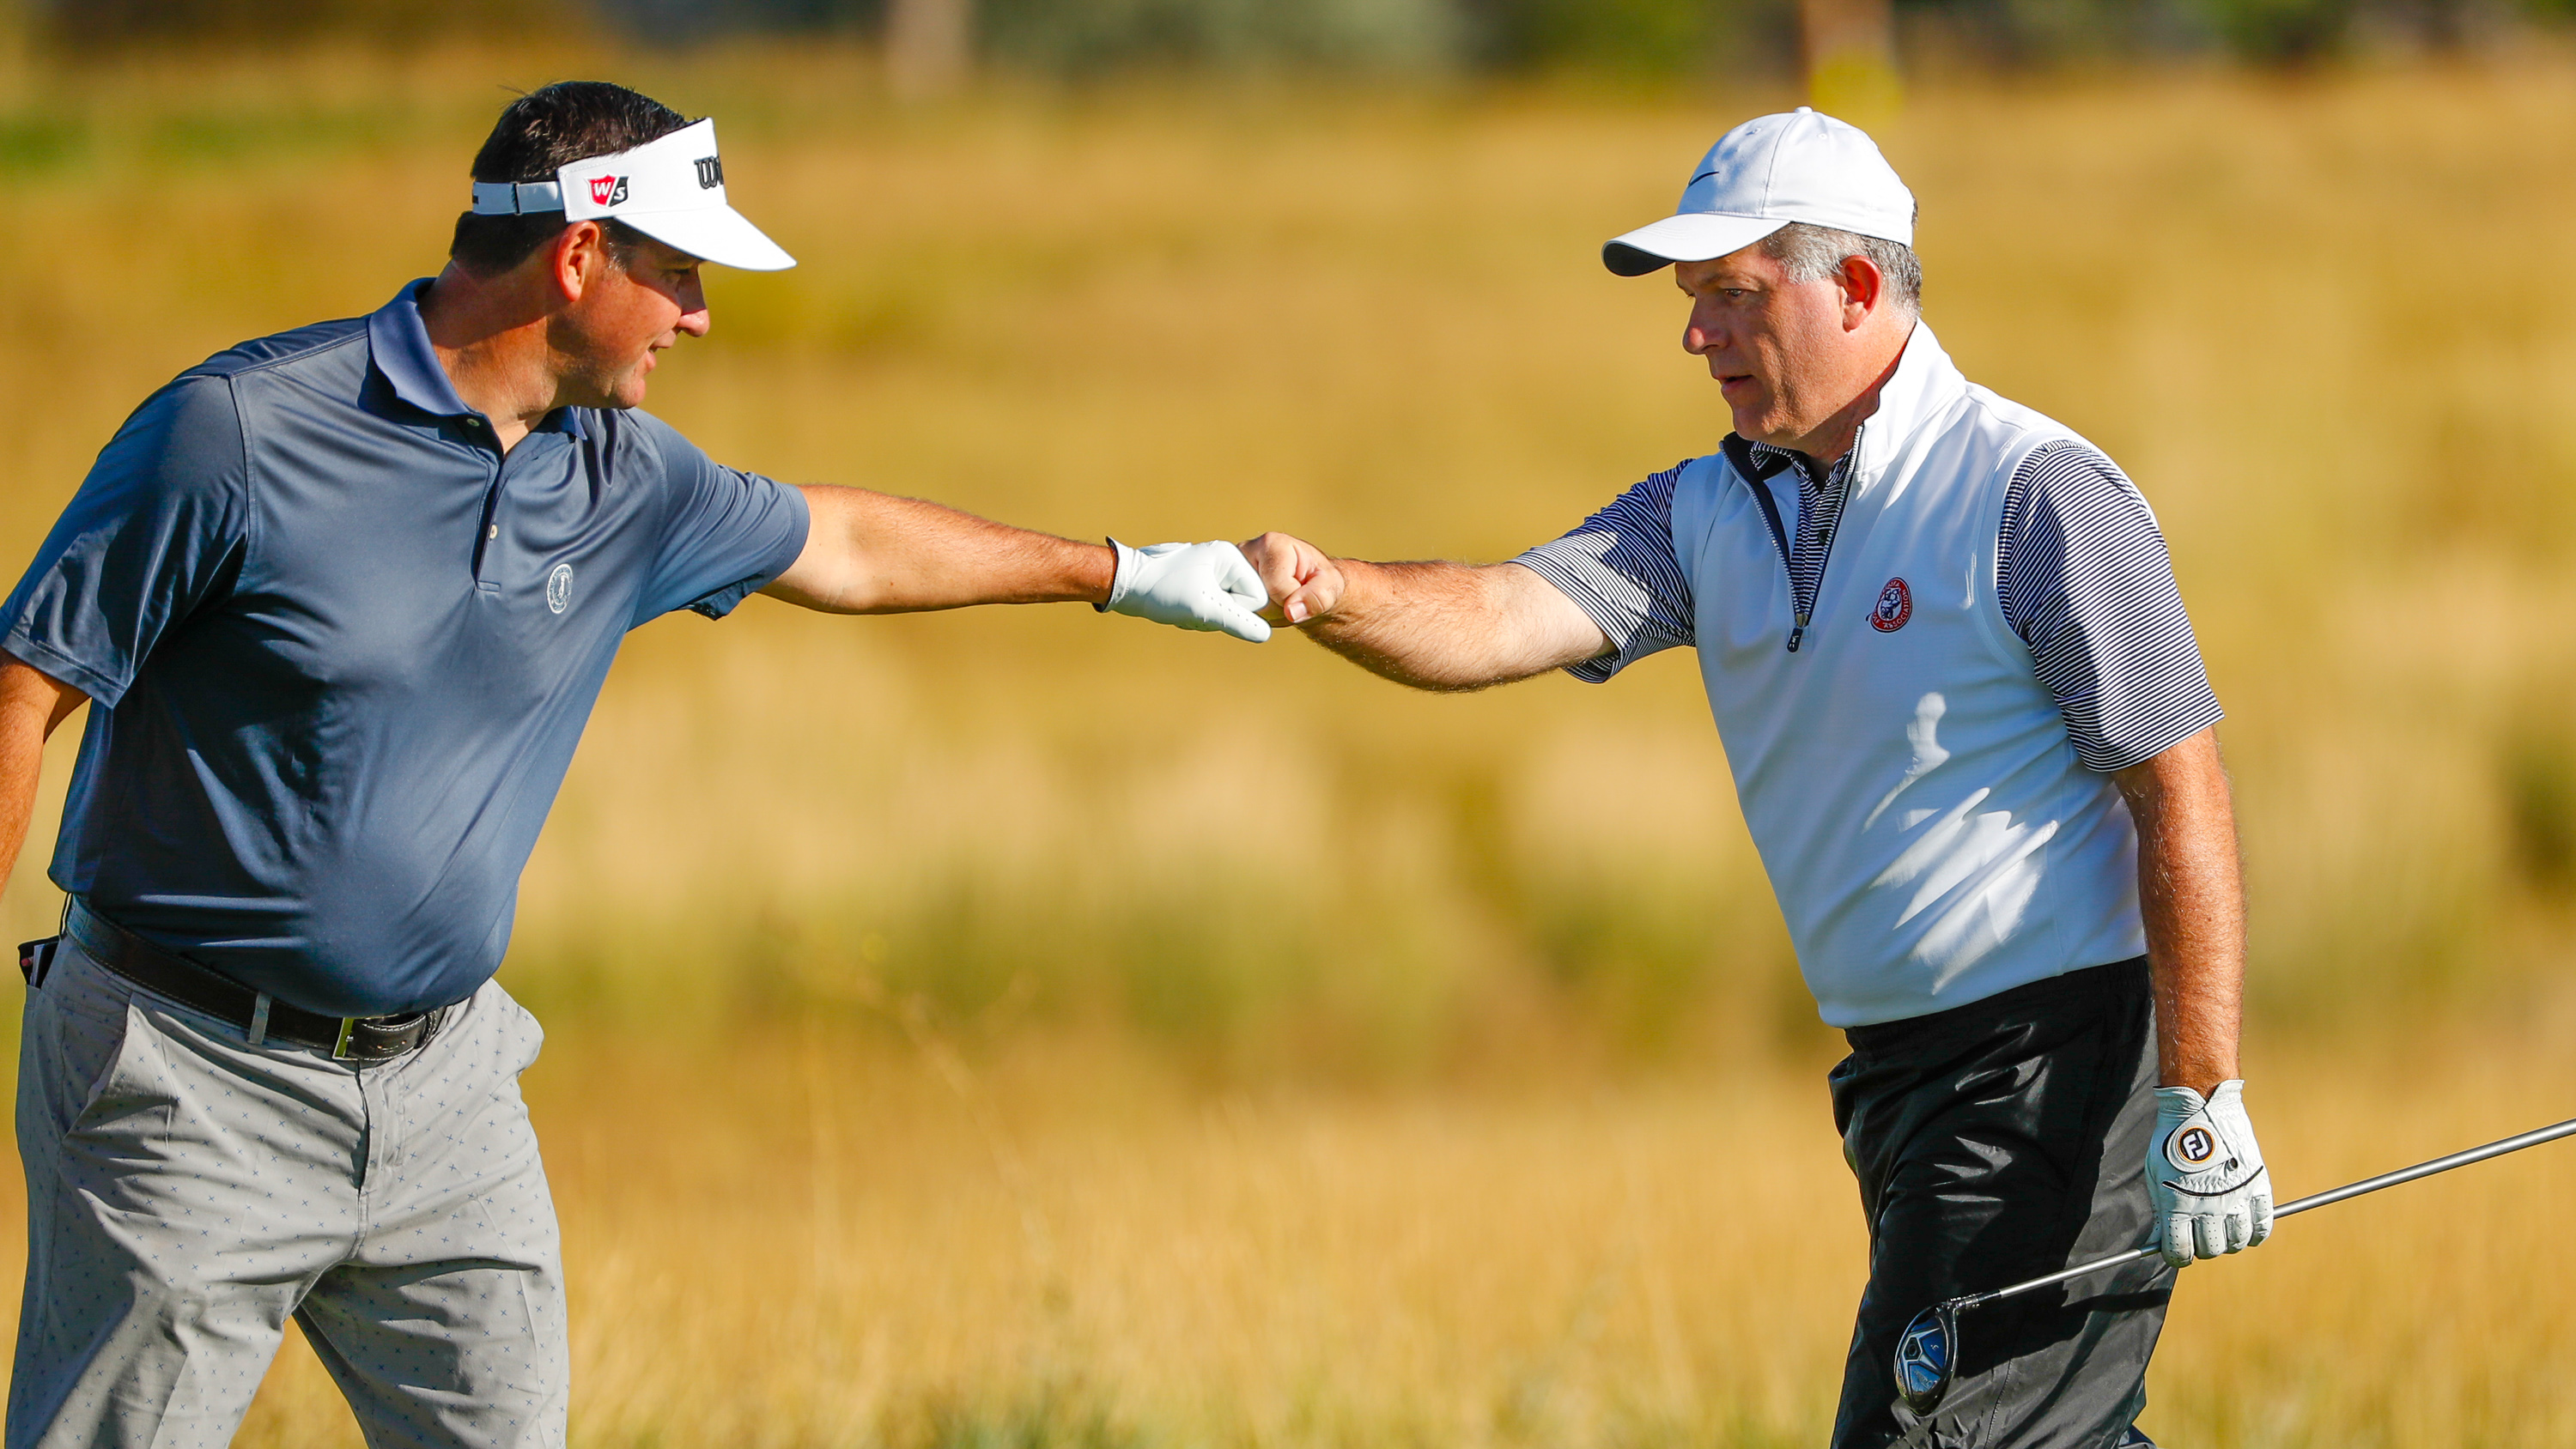 39th U.S. Mid-Amateur: Photos From Saturday's First Round of Stroke Play